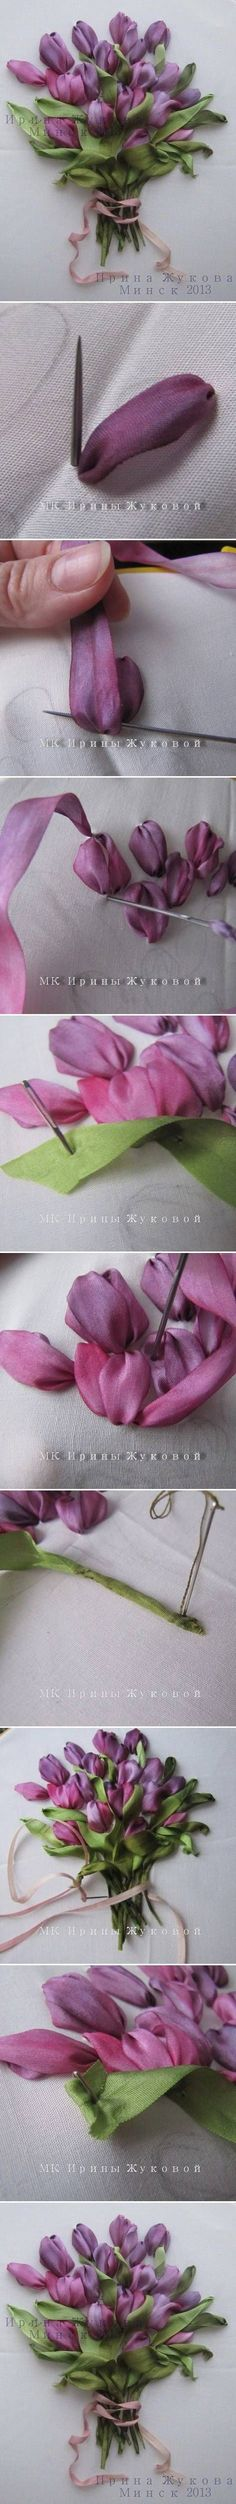 DIY Embroidery Ribbon Flower DIY Projects / UsefulDIY.com